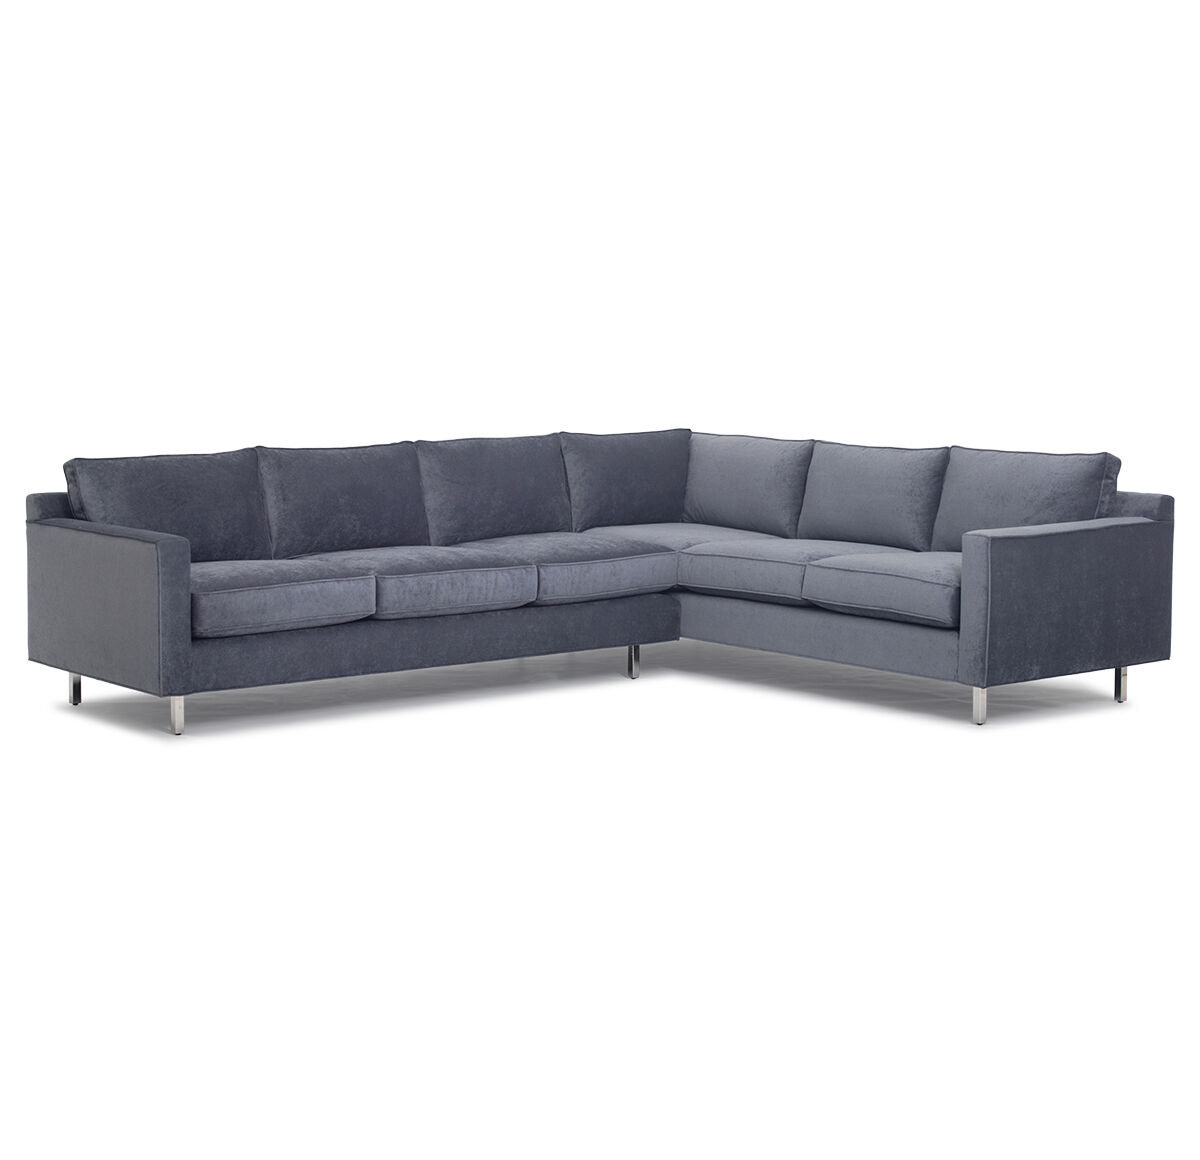 HUNTER STUDIO SECTIONAL SOFA, ELLER   SLATE, Hi Res